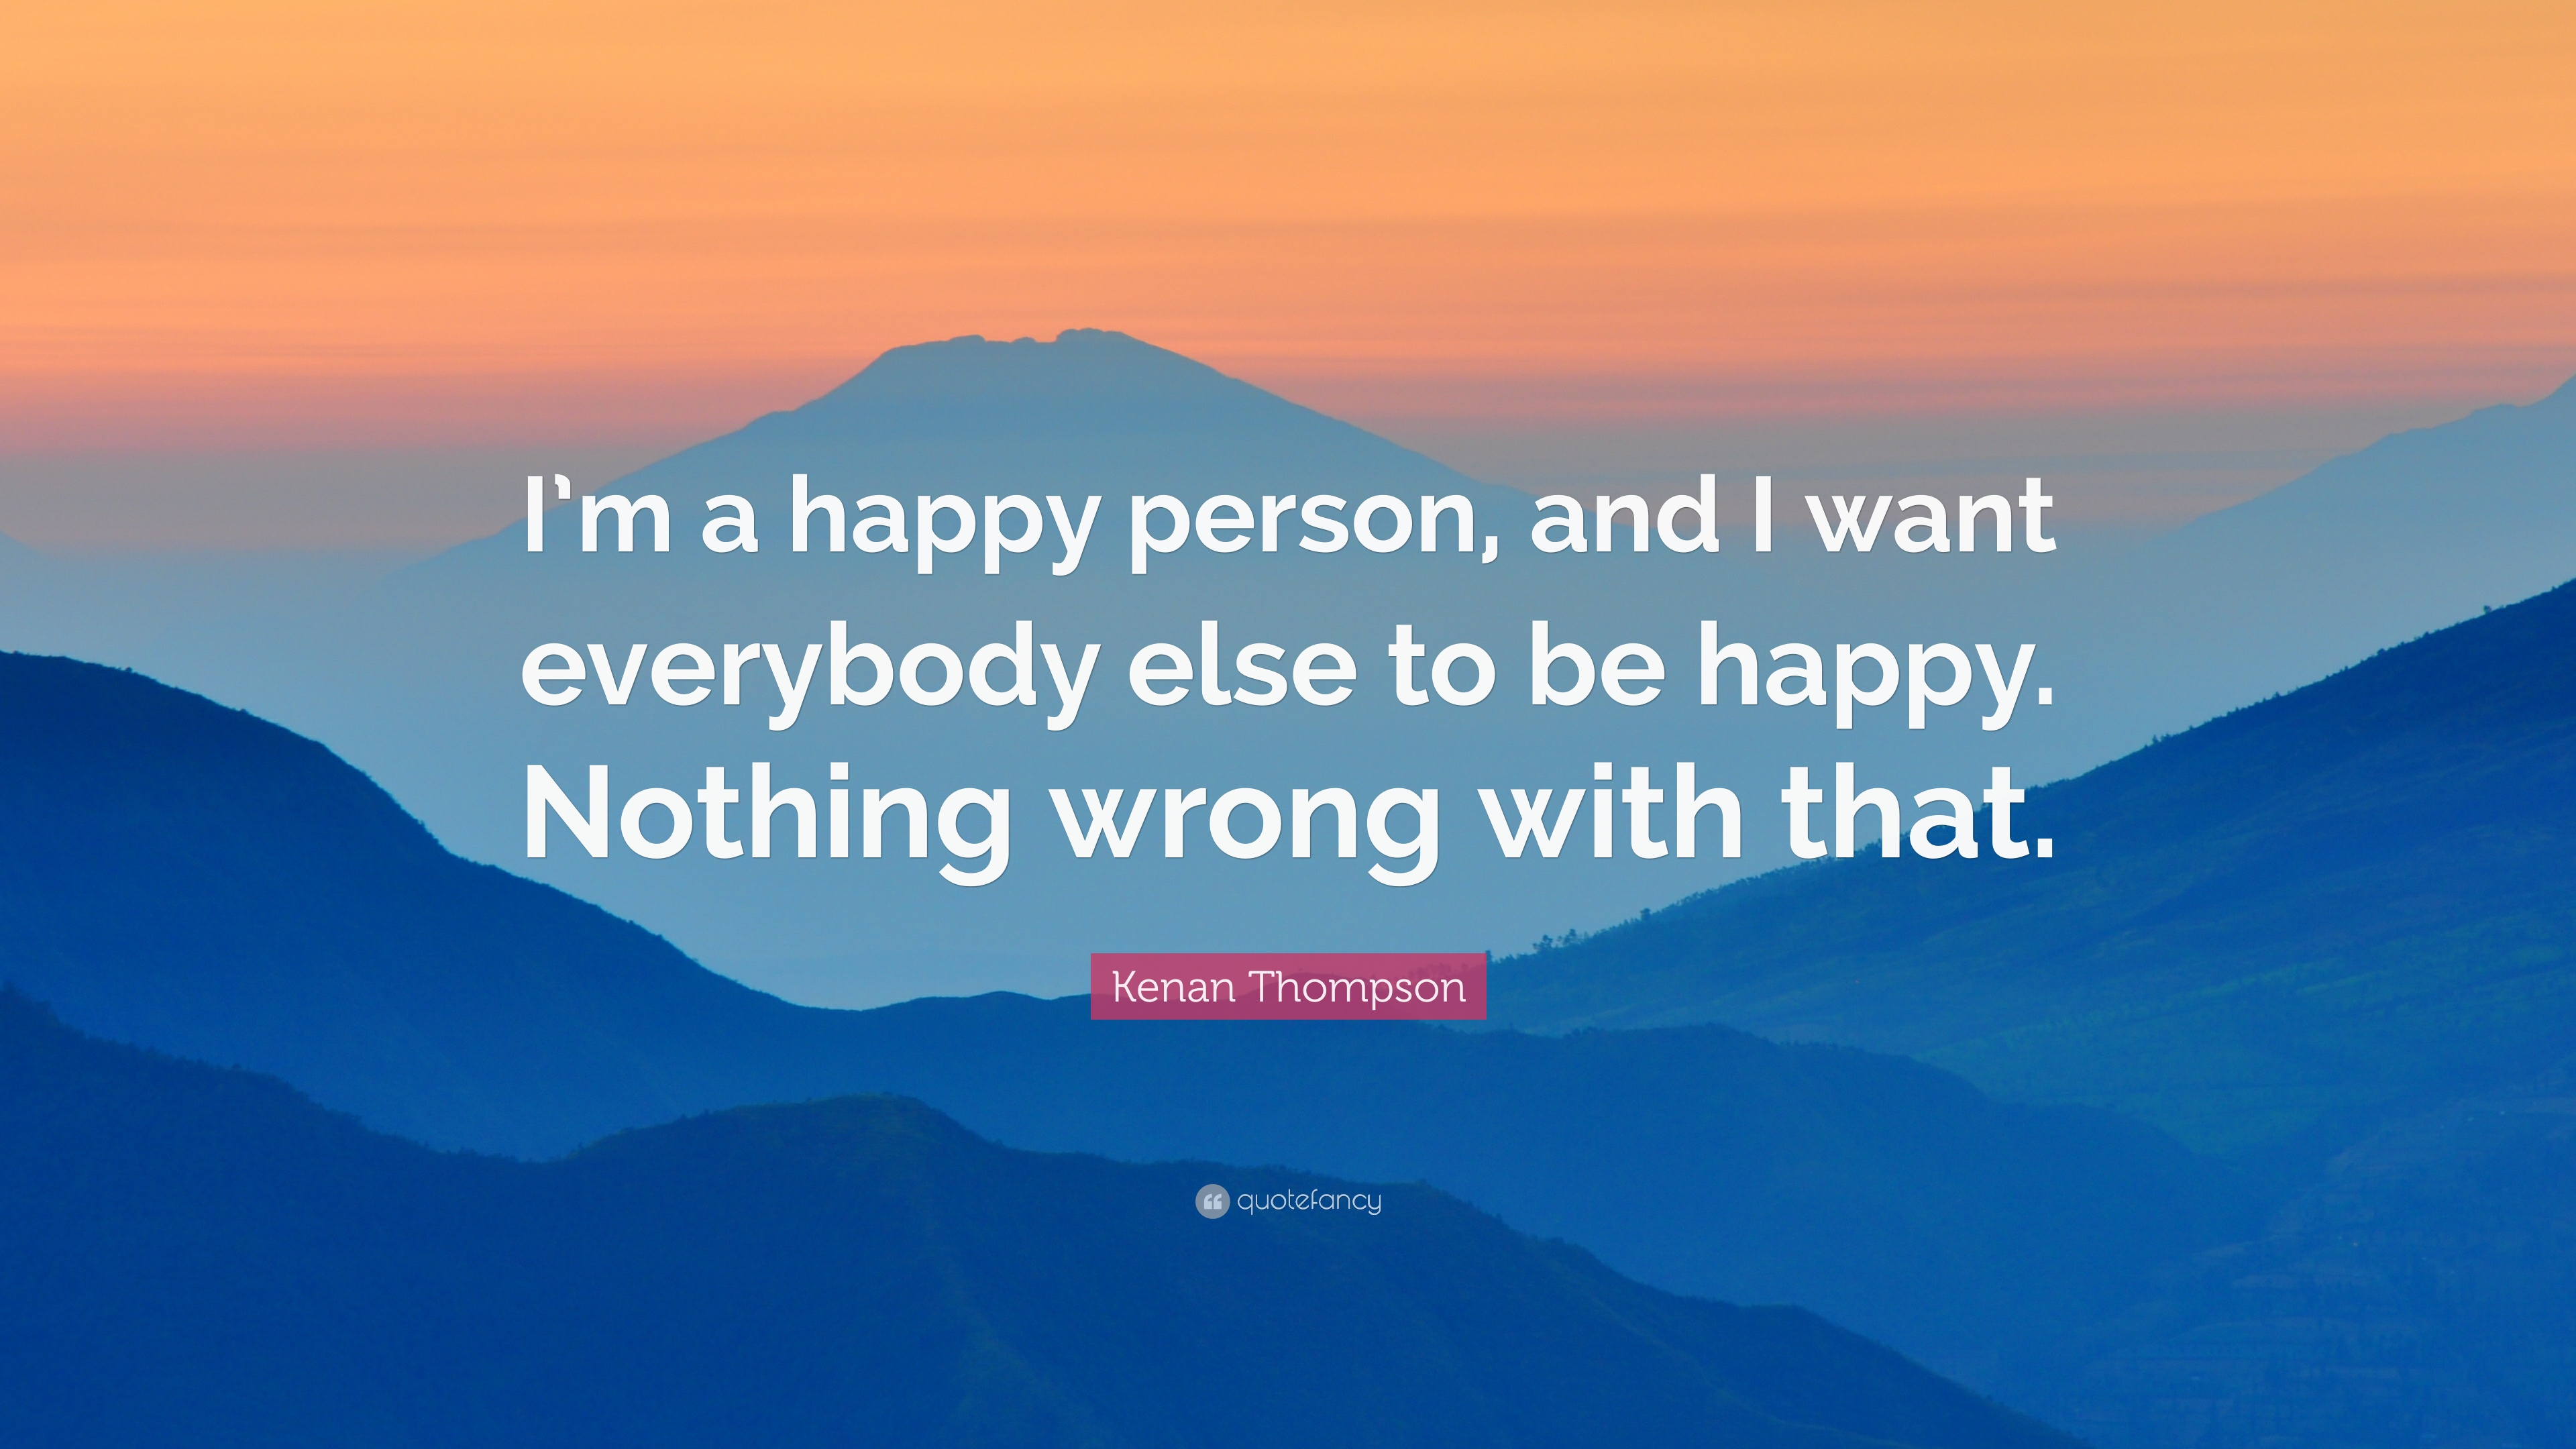 Quotes About Happy Person Kenan Thompson Quotes 10 Wallpapers  Quotefancy